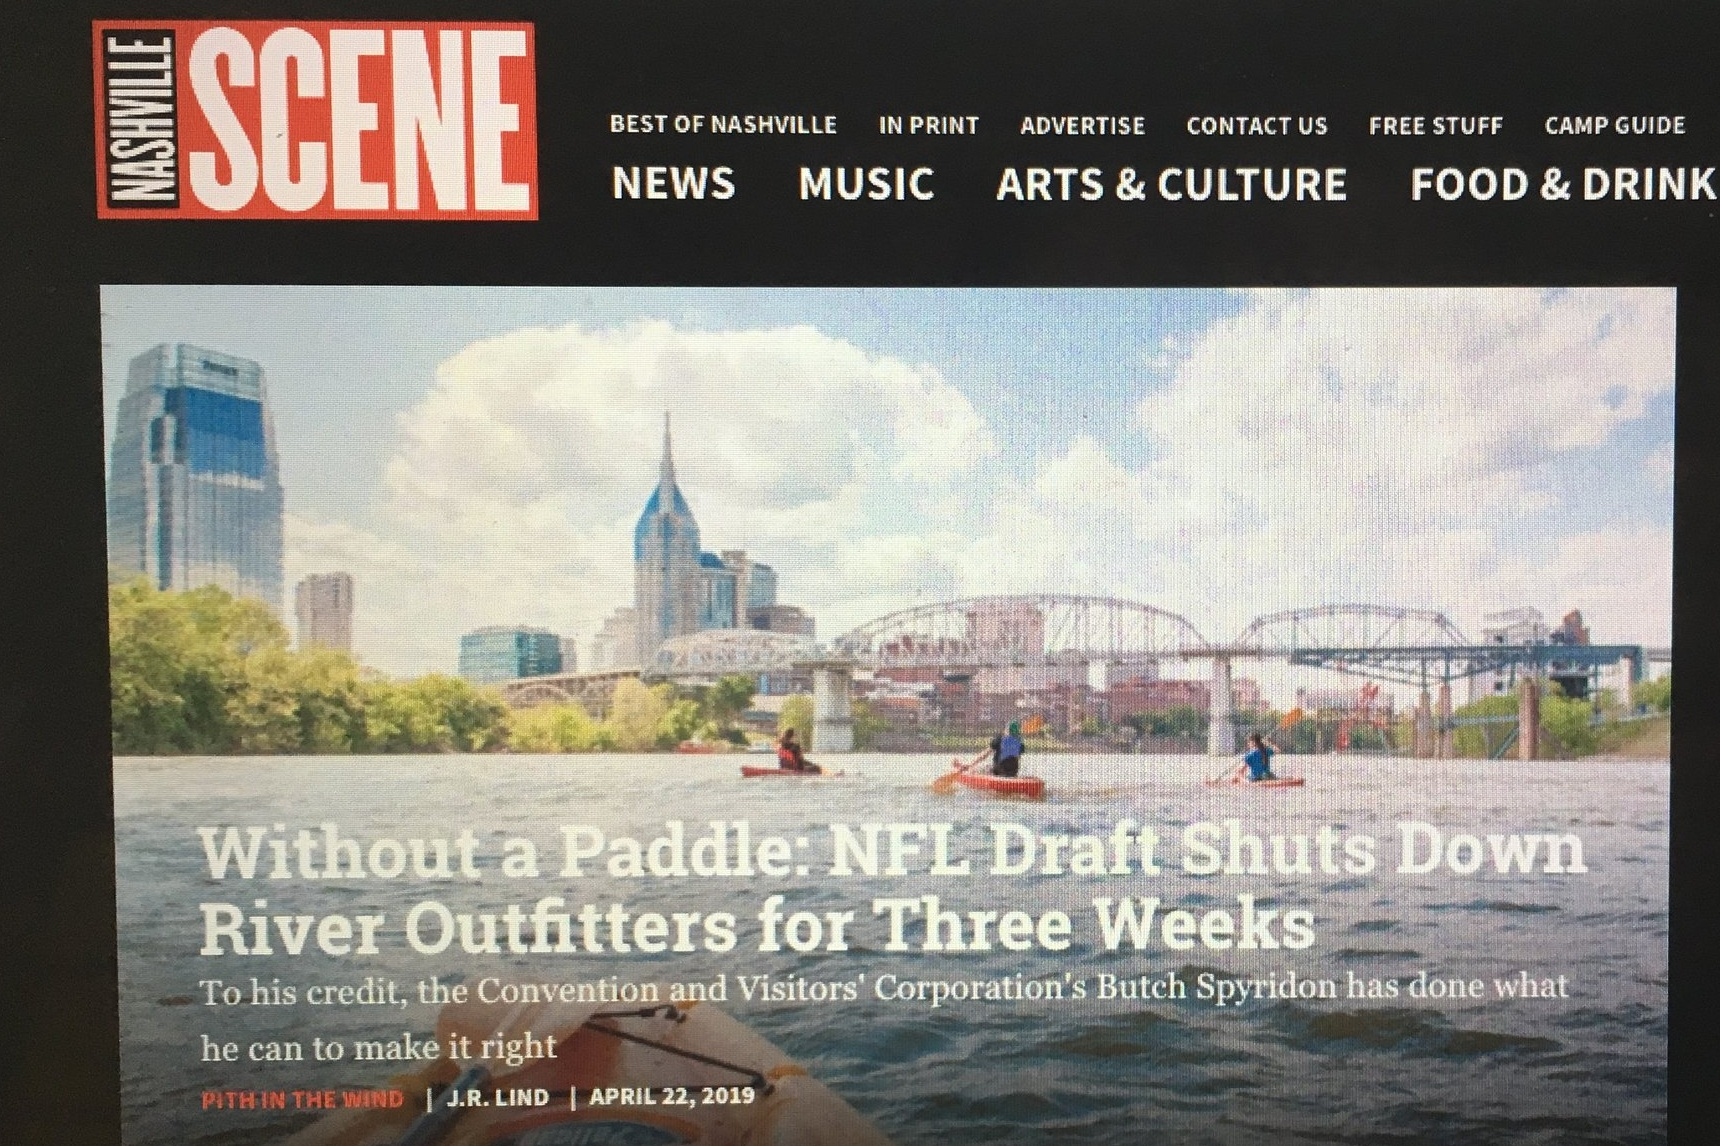 Kayak in Nashville on Cumberland River for Nashville Scene Front Page